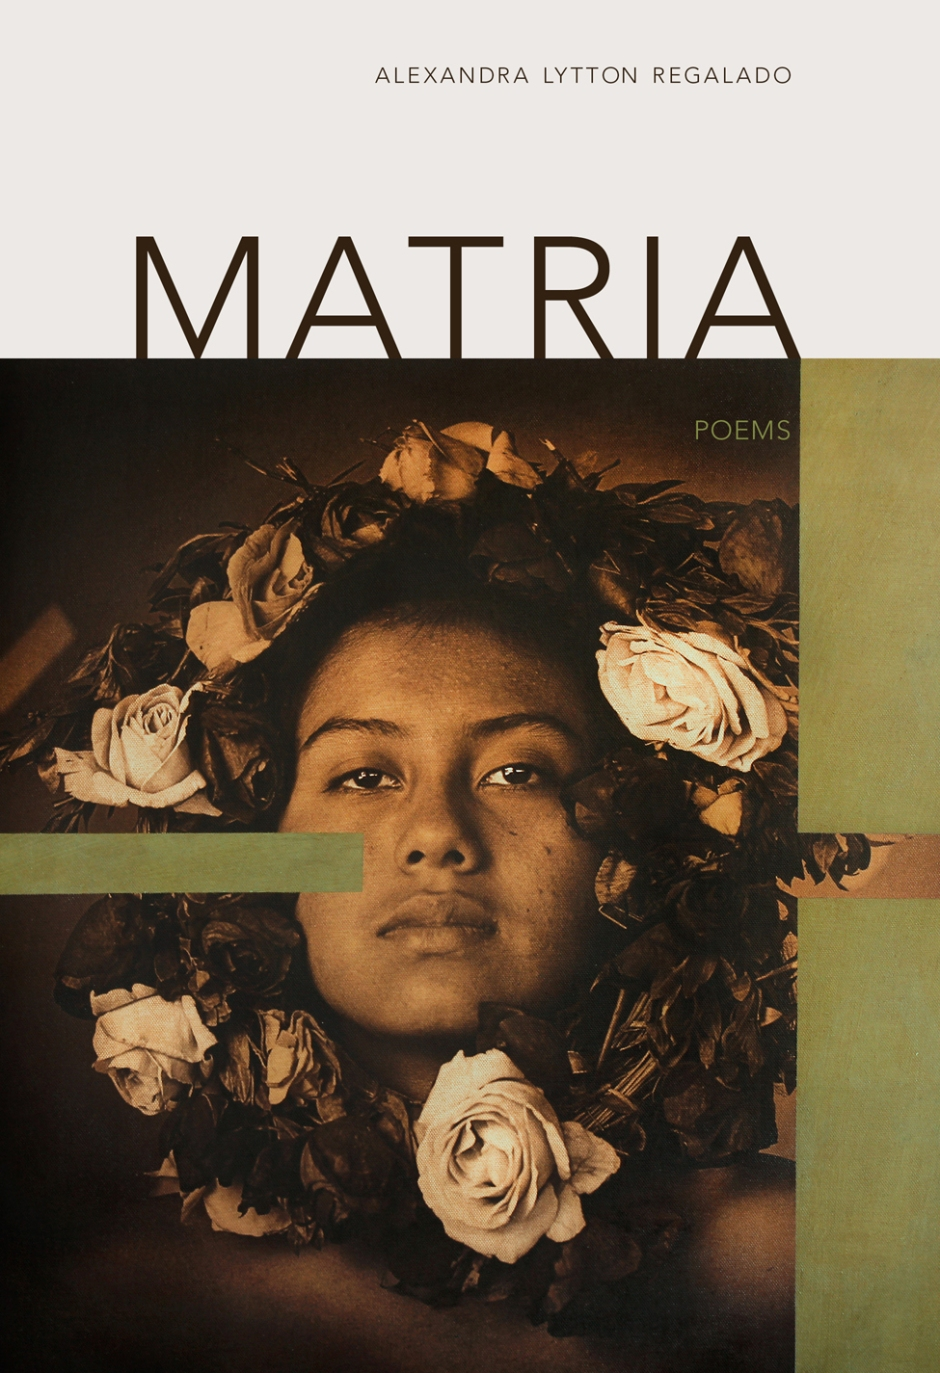 matria_cover.jpg